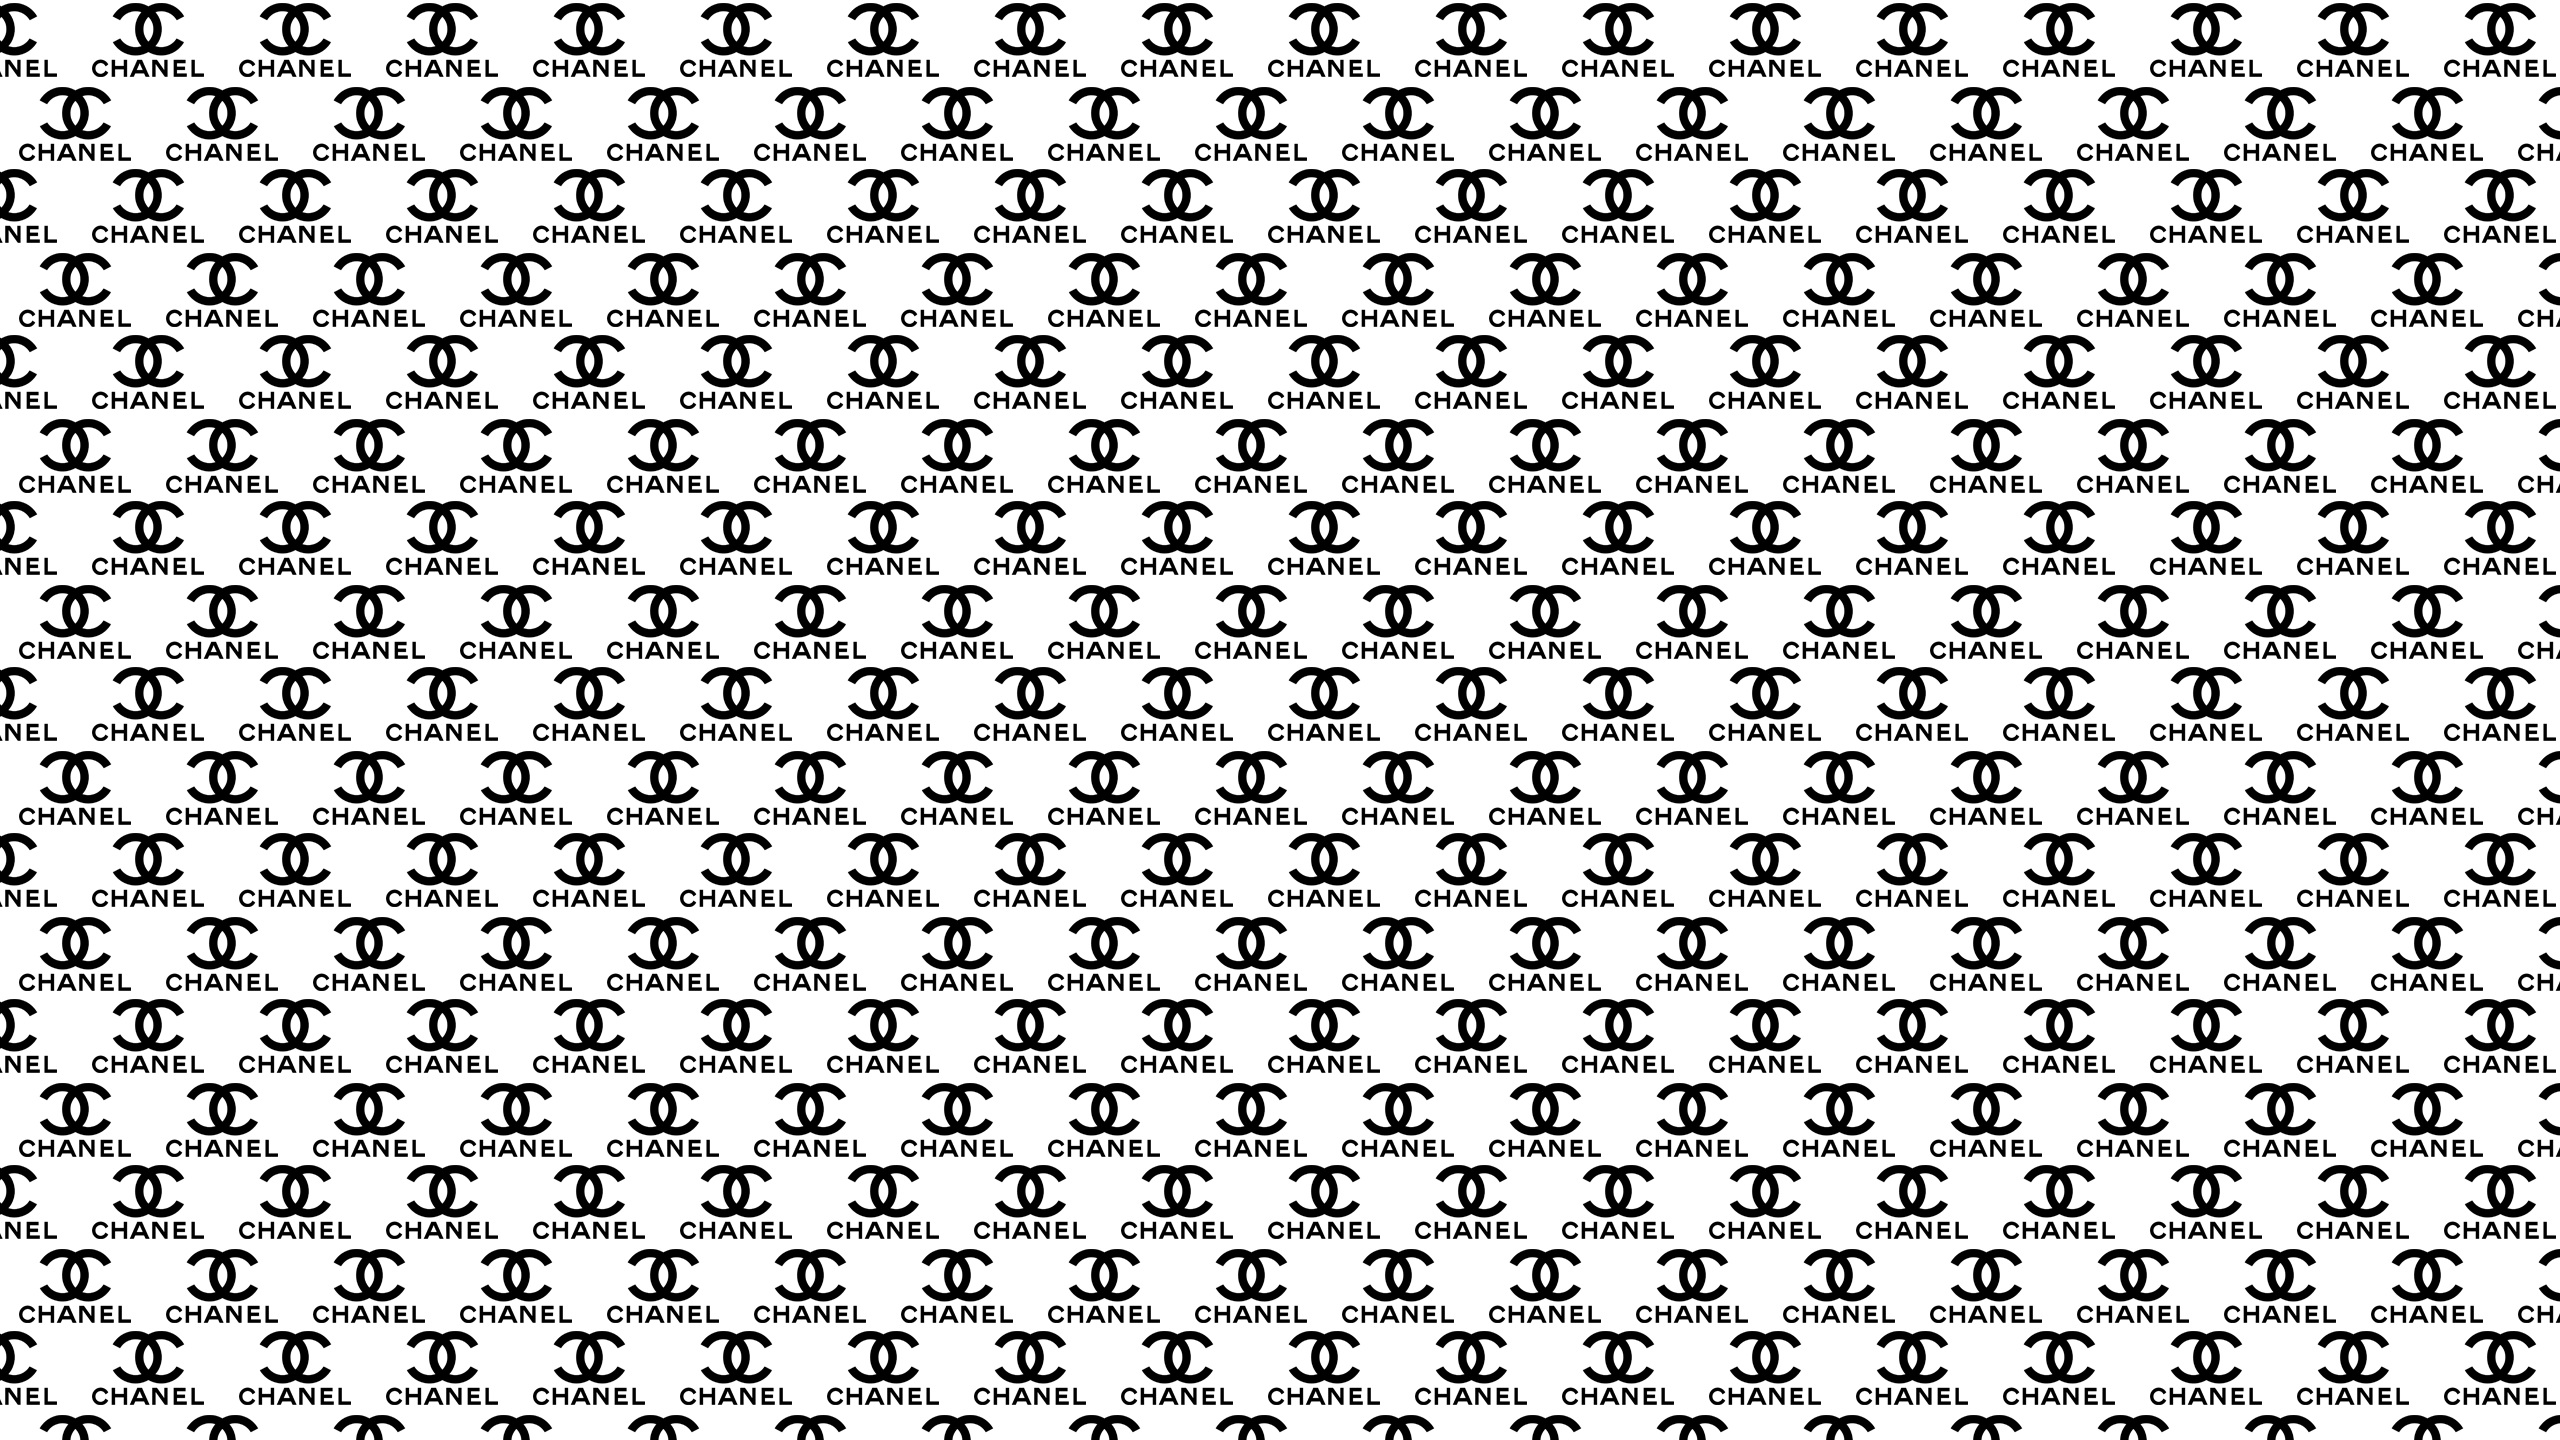 chanel wallpapers logo